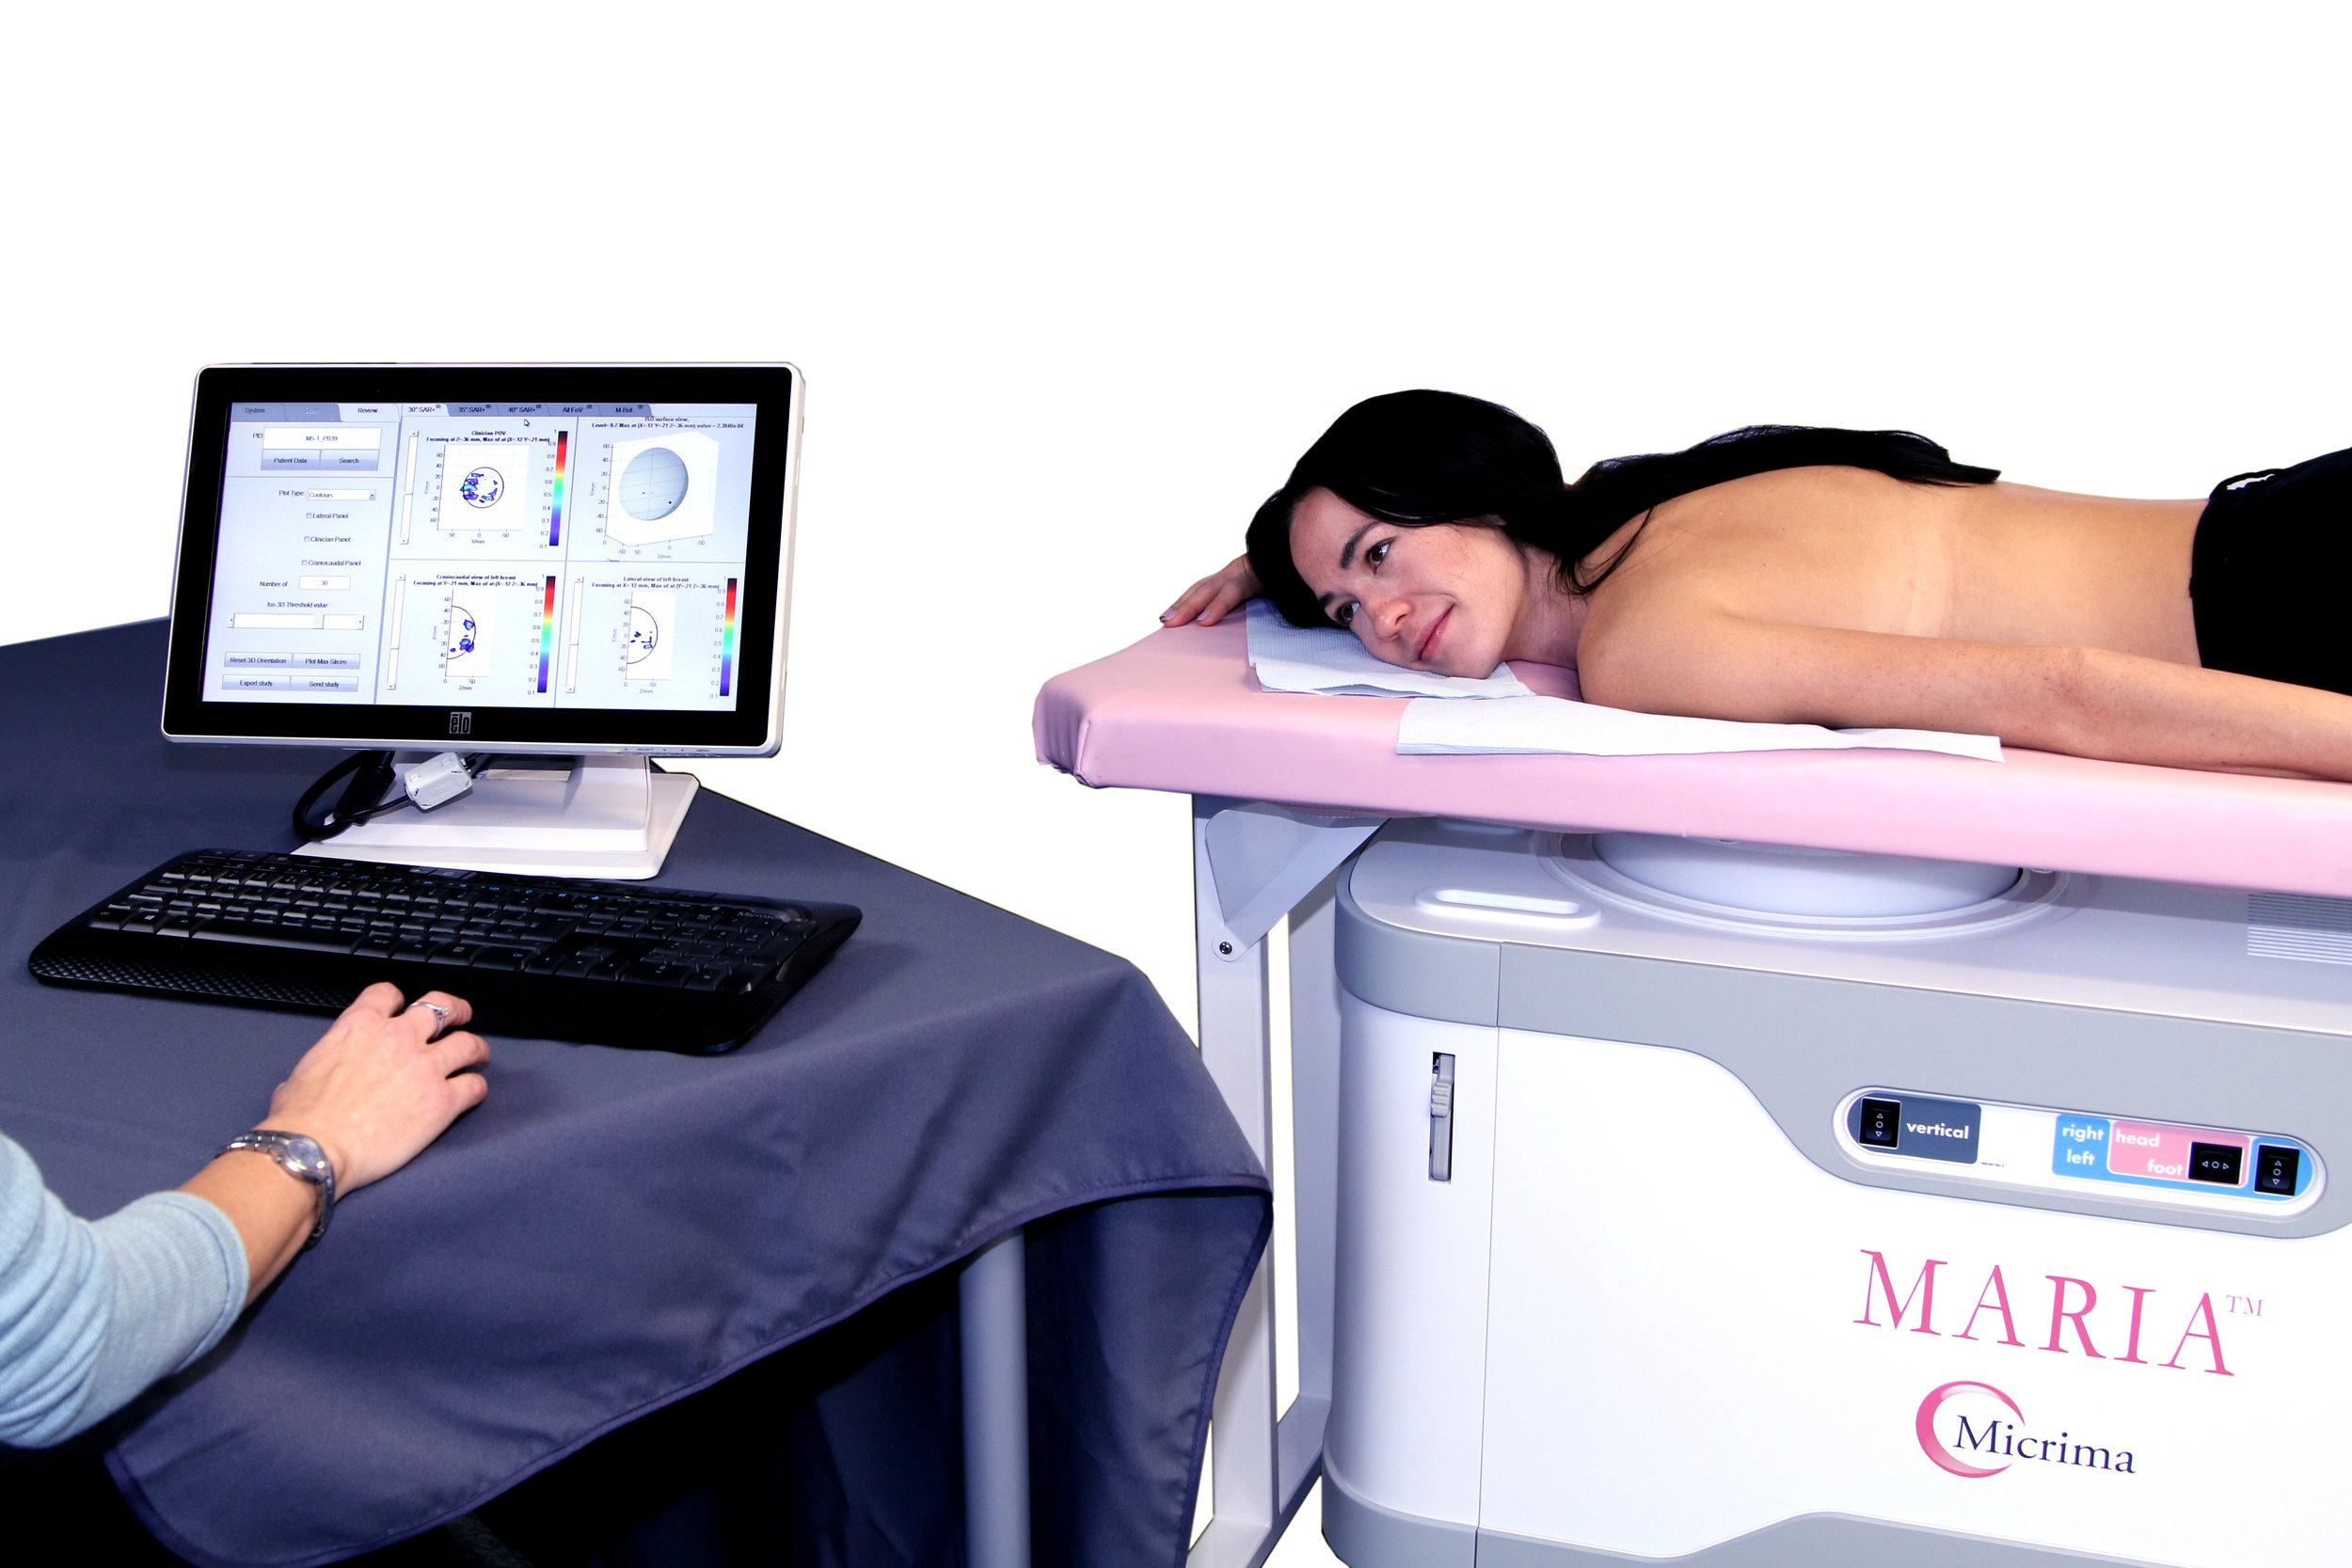 The MARIA® breast cancer detection system being developed by Micrima